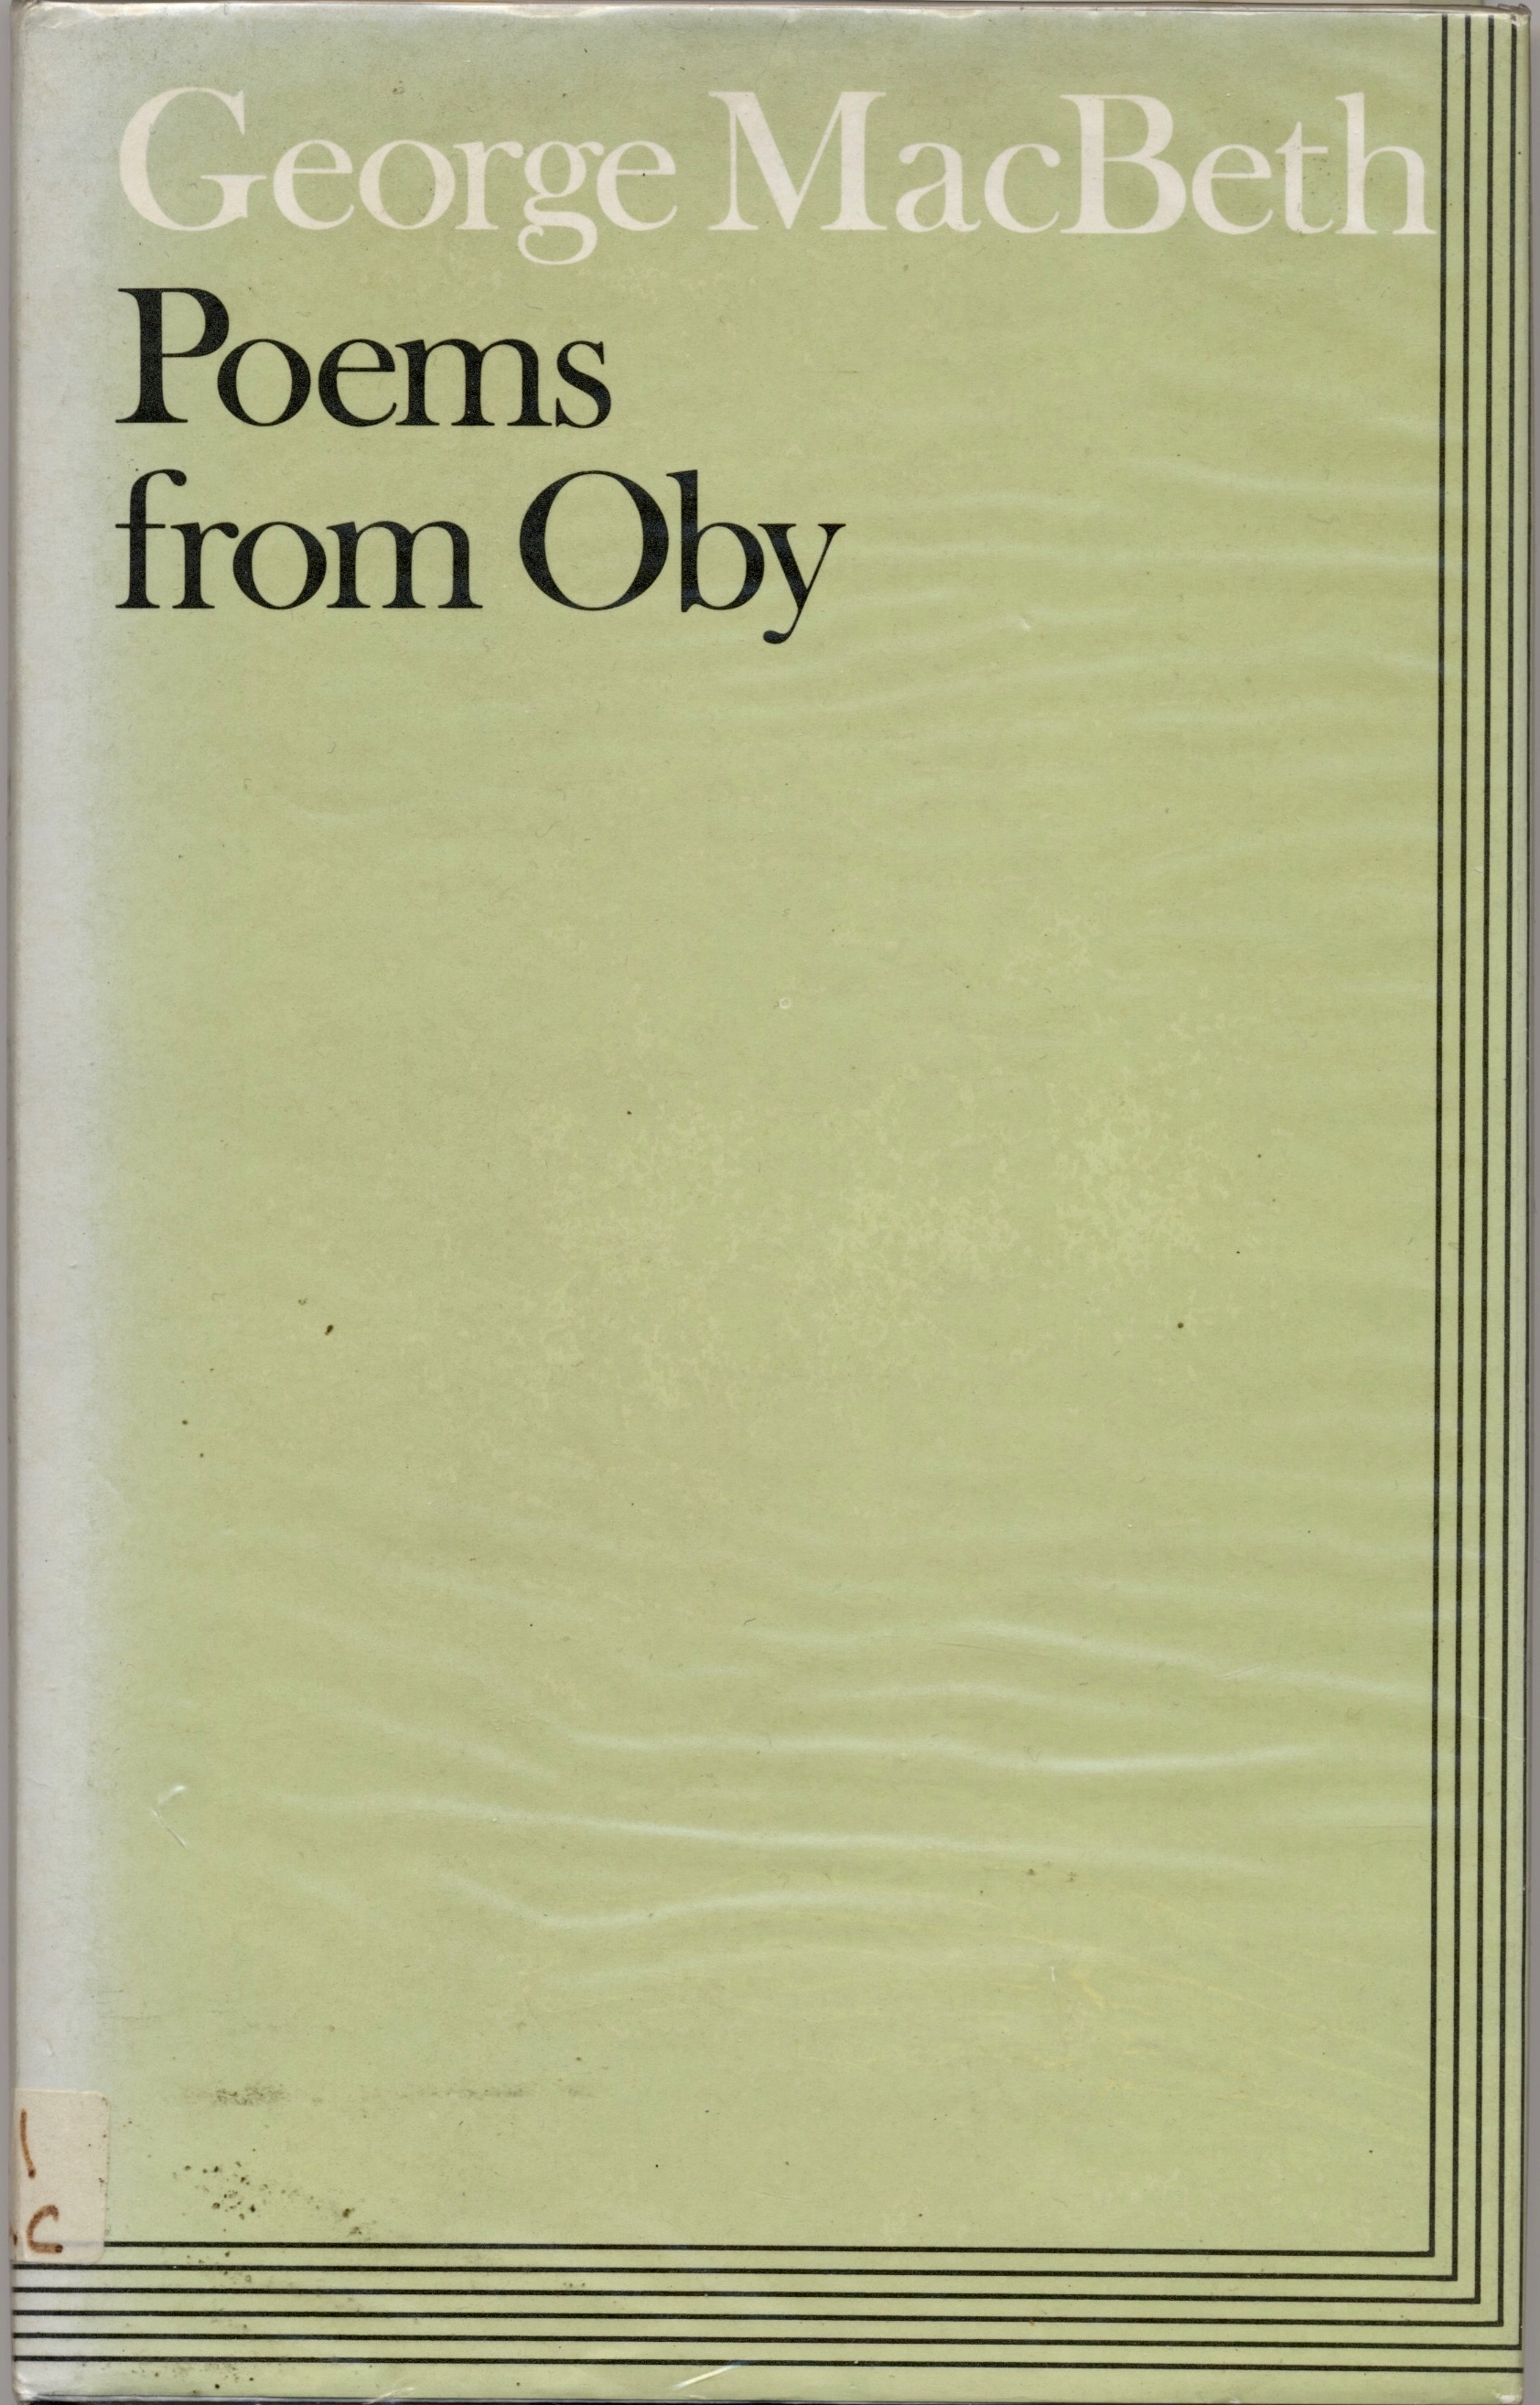 Poems from Oby, by George MacBeth | Vulpes Libris